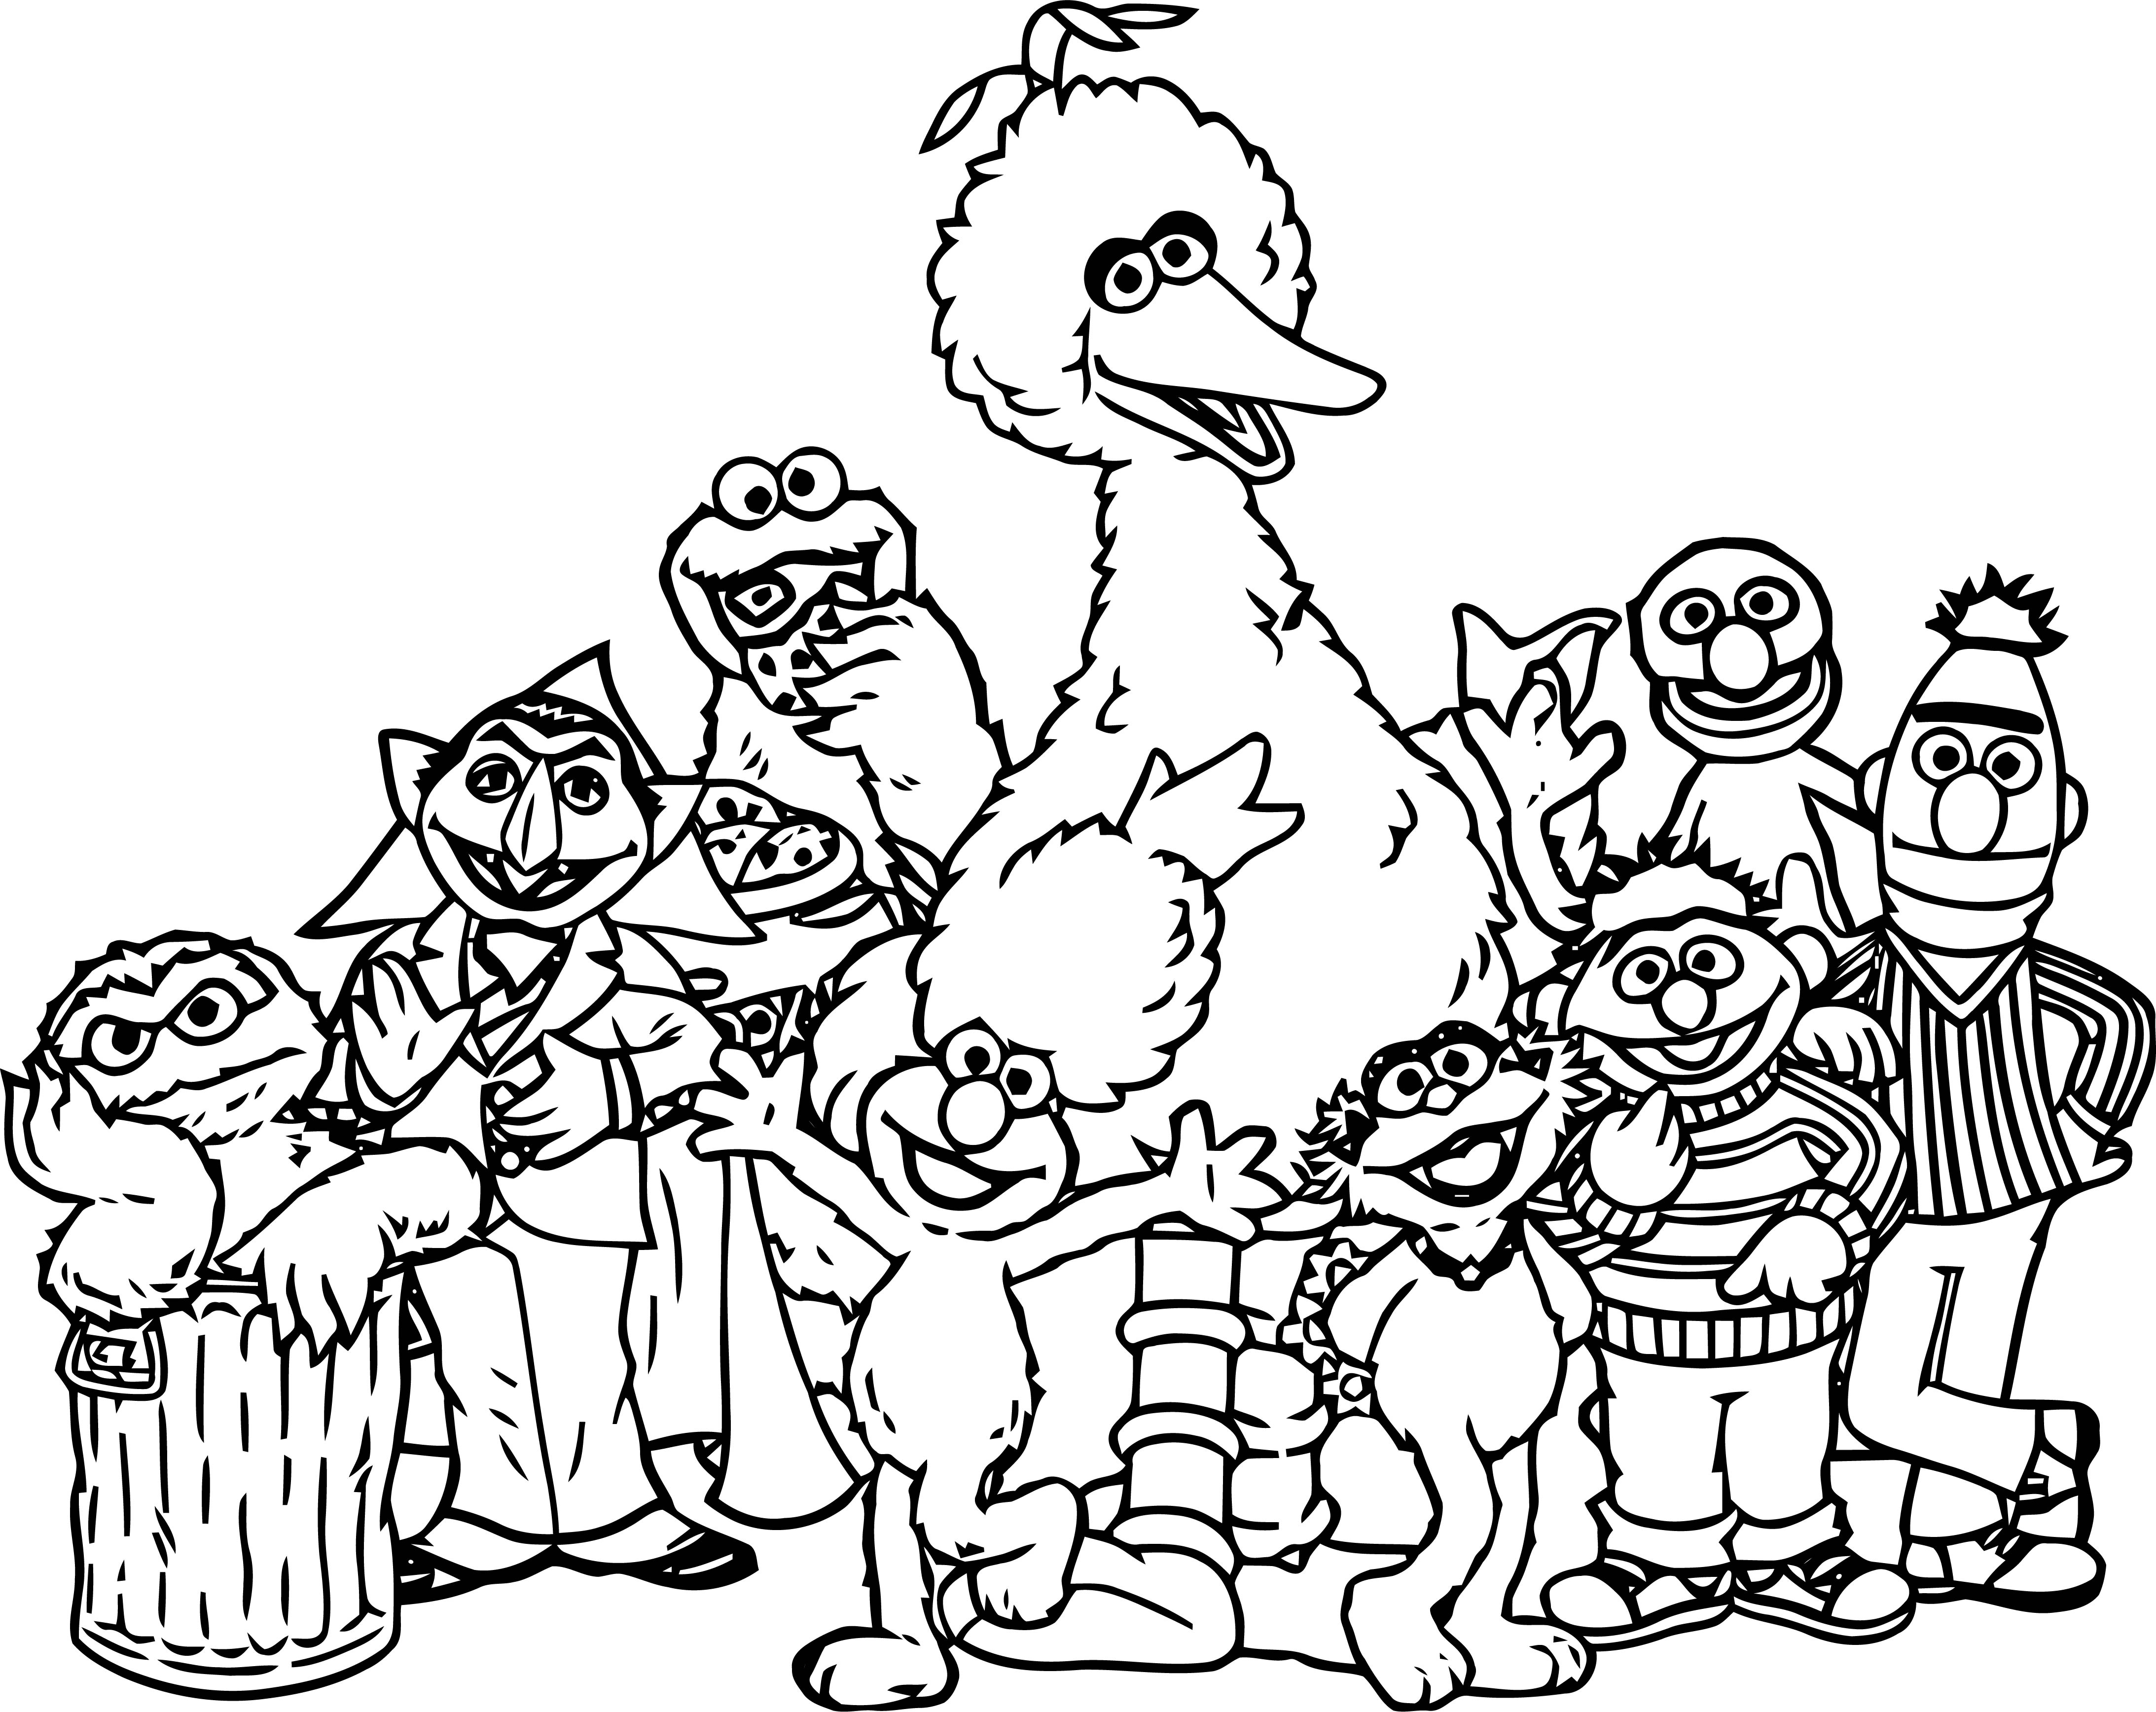 Sesame Street Characters Sesame Street Coloring Page